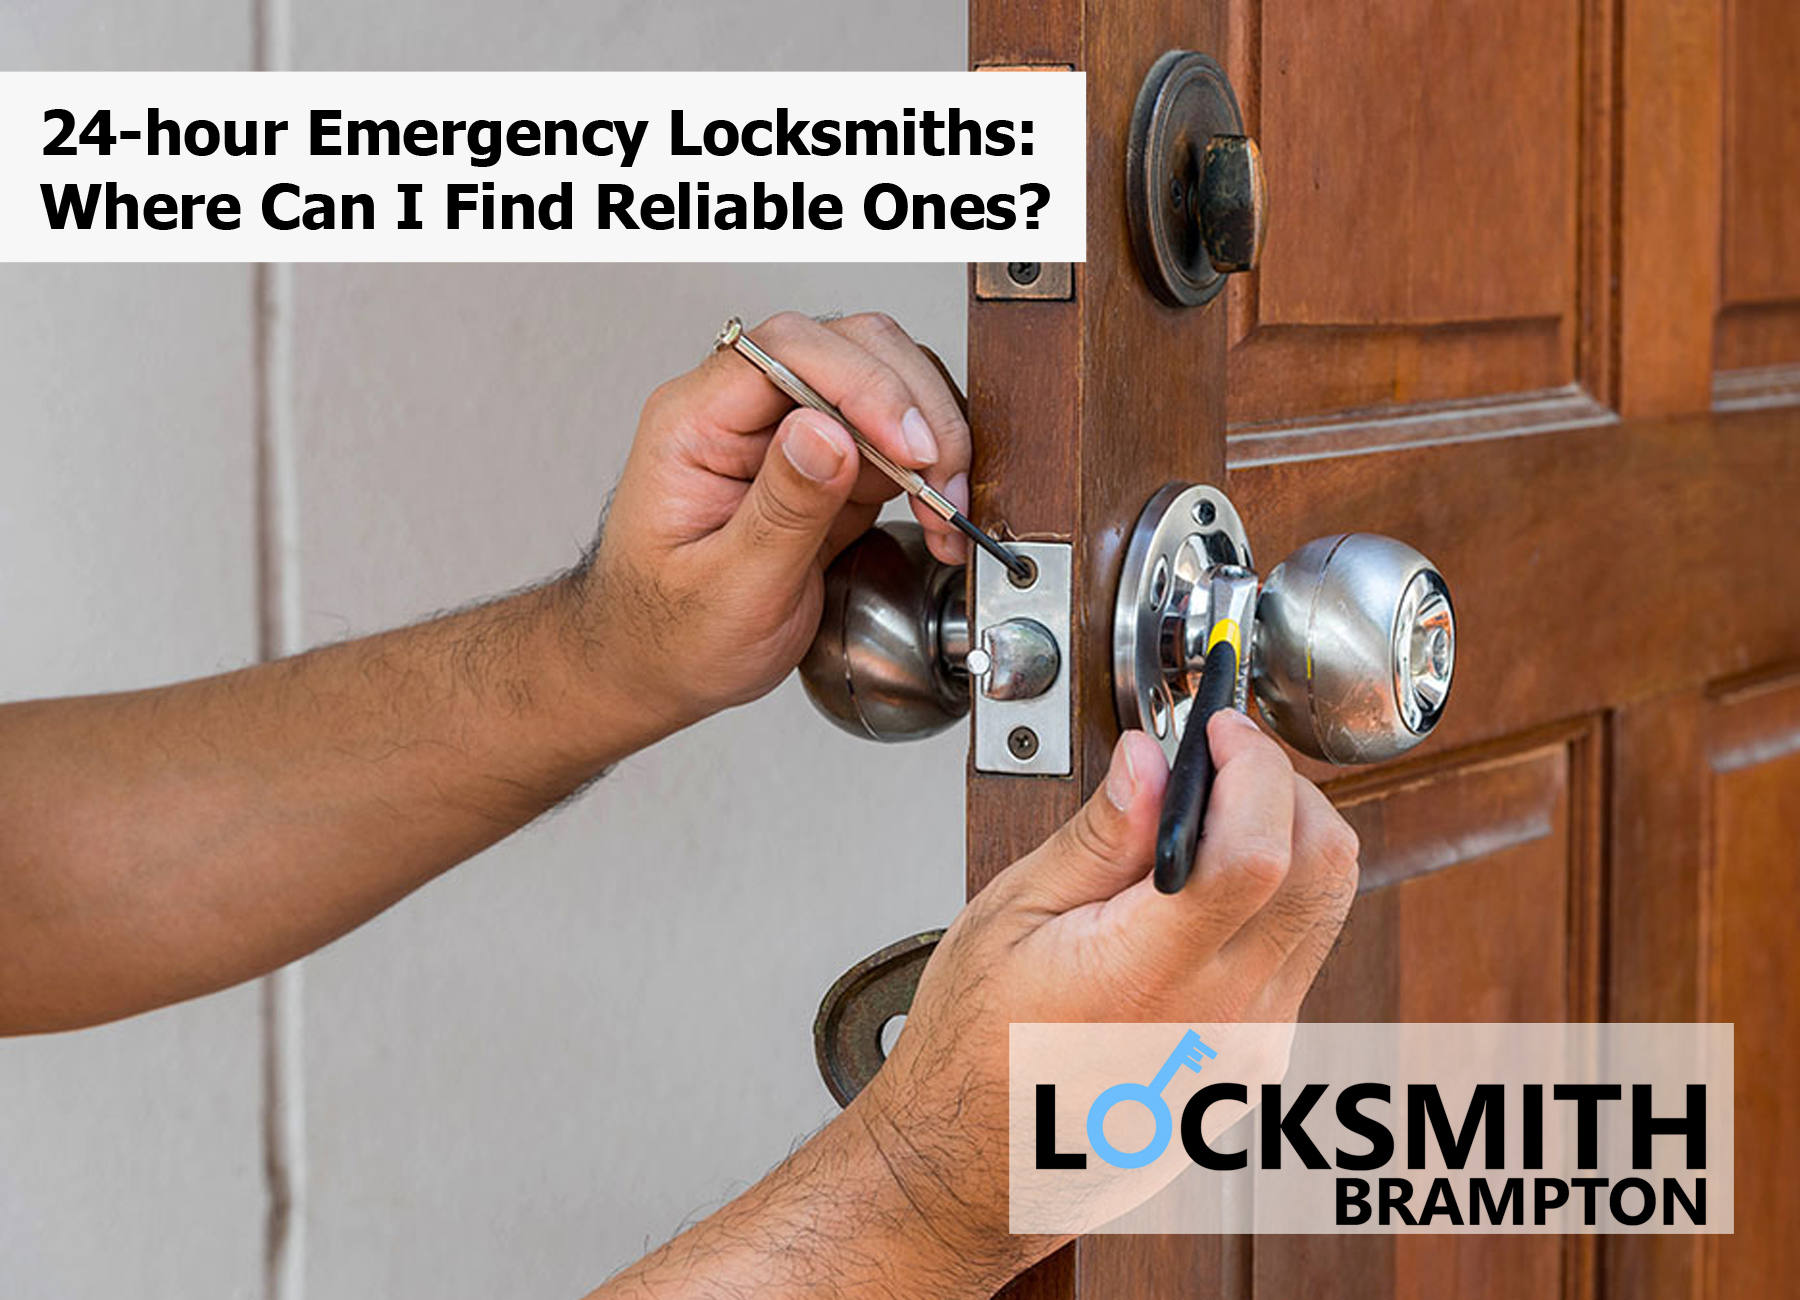 24-hour Emergency Locksmiths: Where Can I Find Reliable Ones?